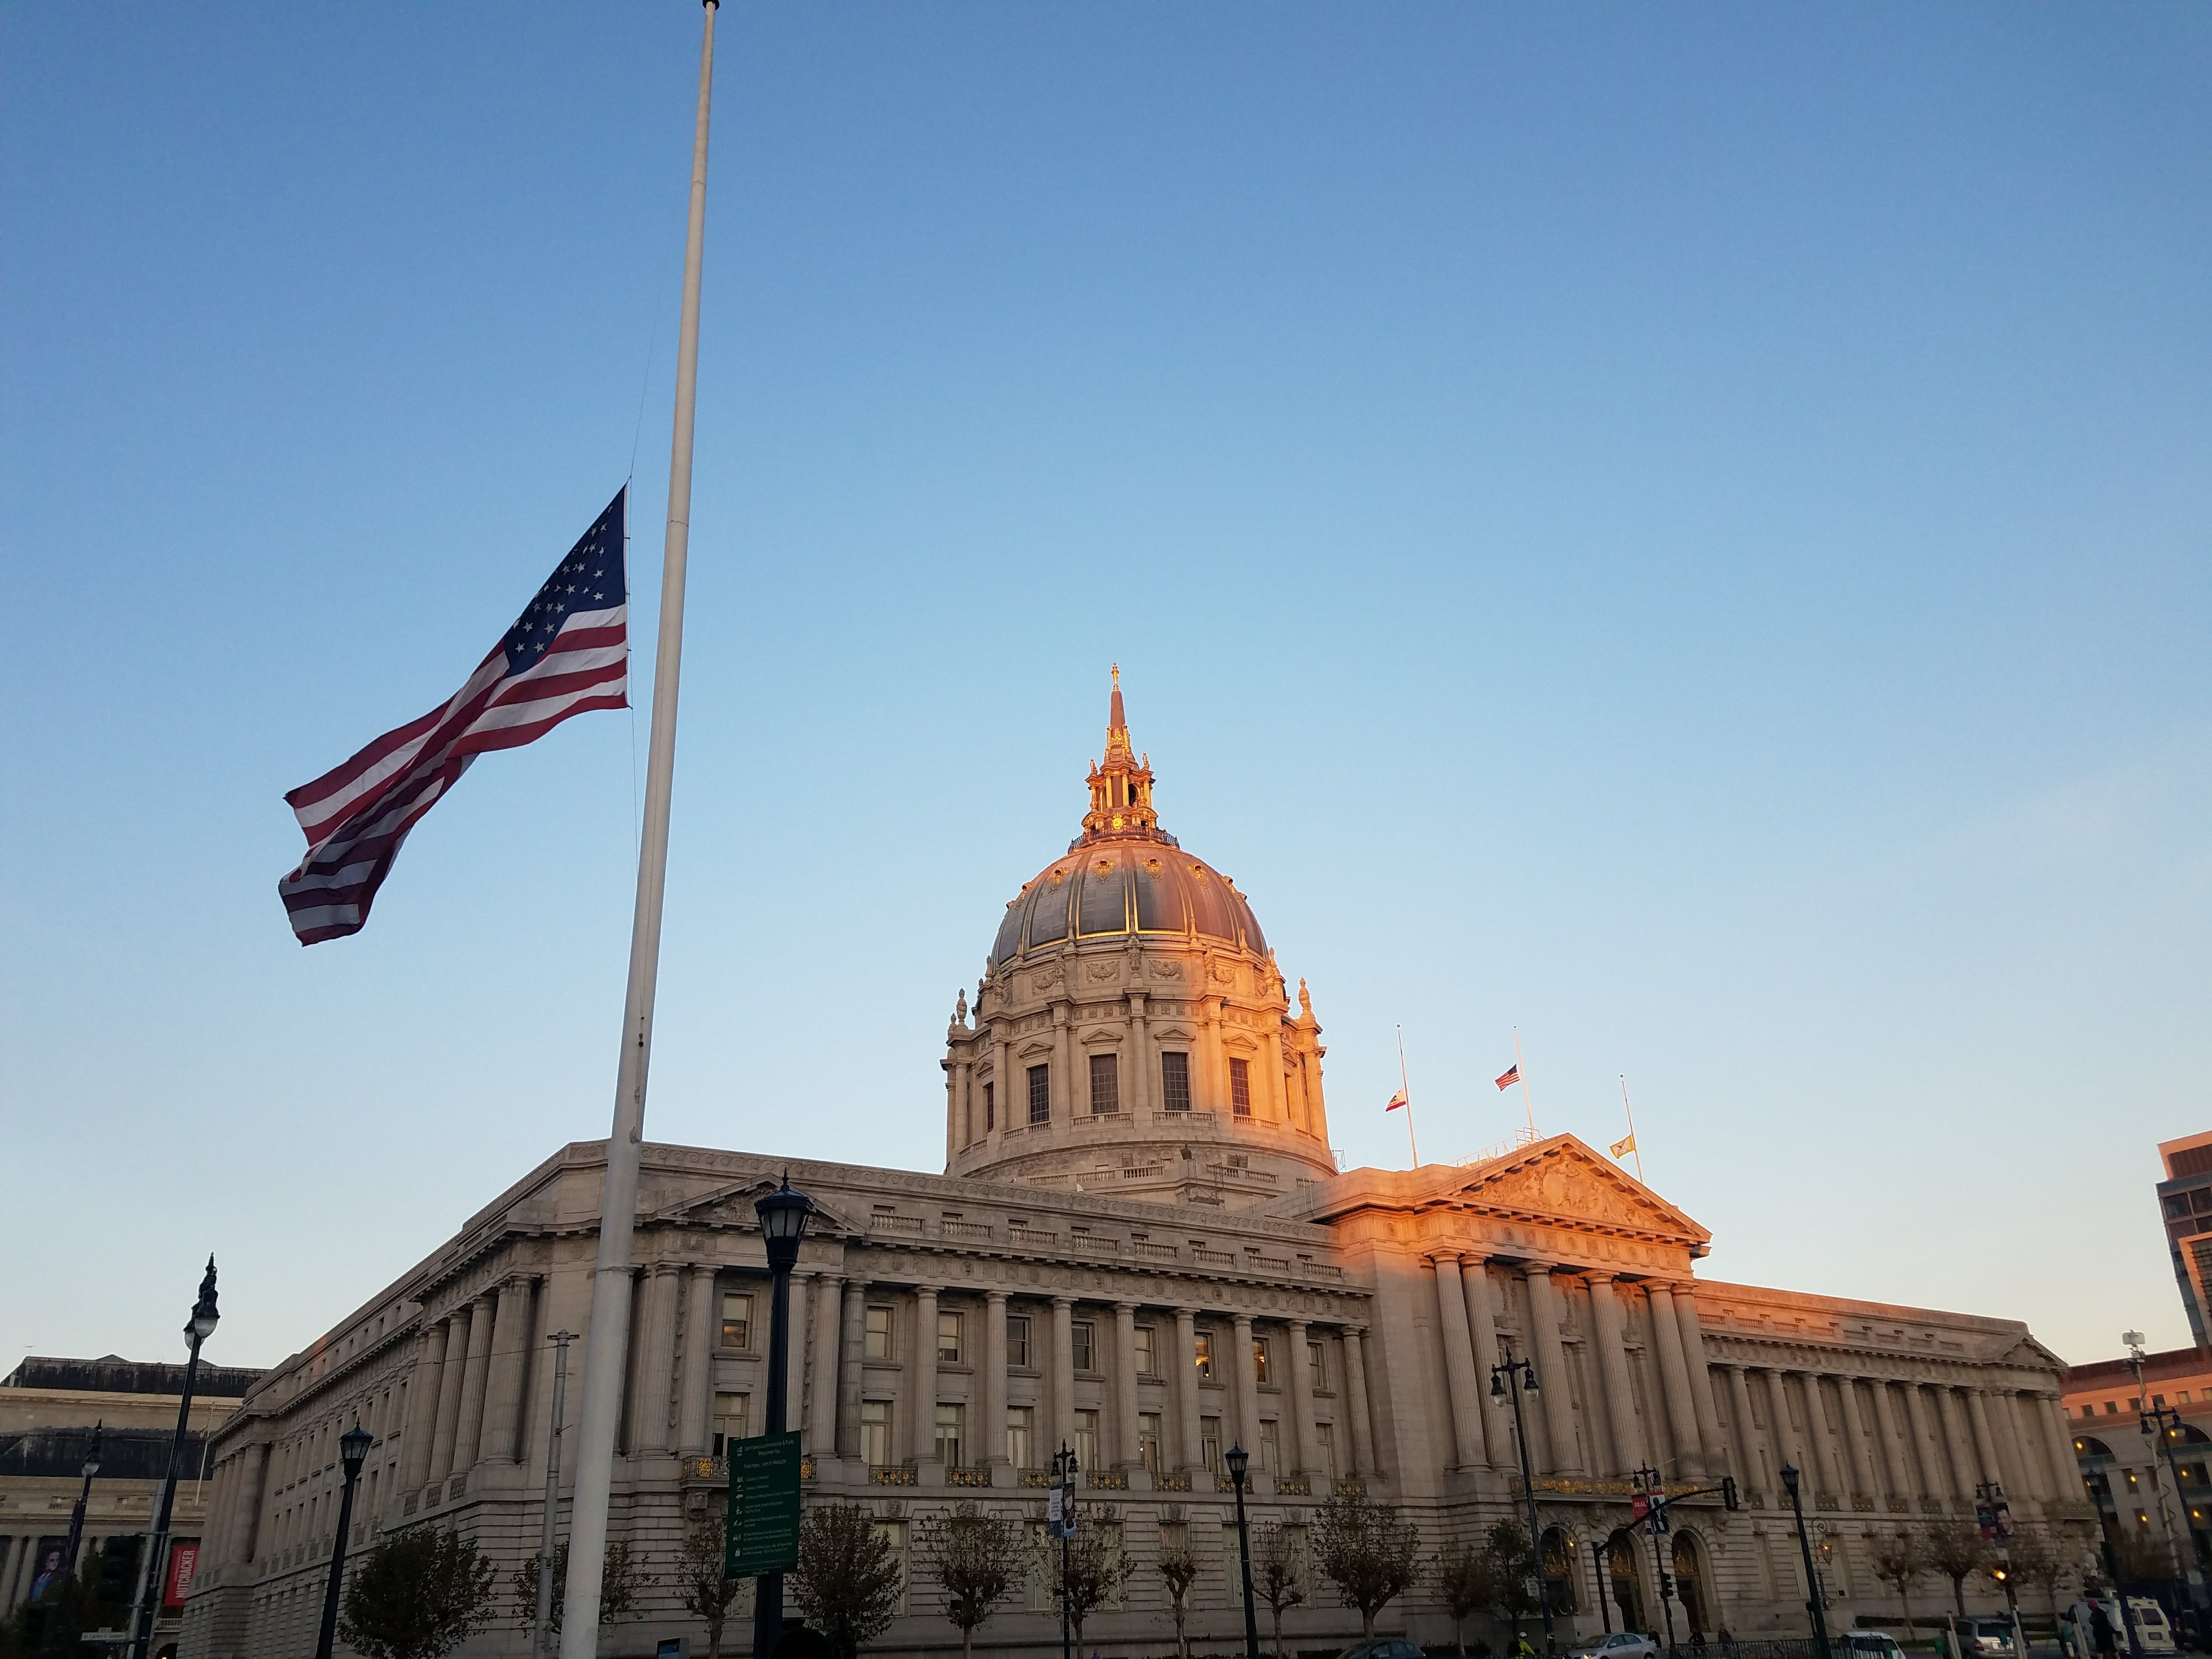 City hall flags at half mast the morning of Mayor Ed Lee's death.